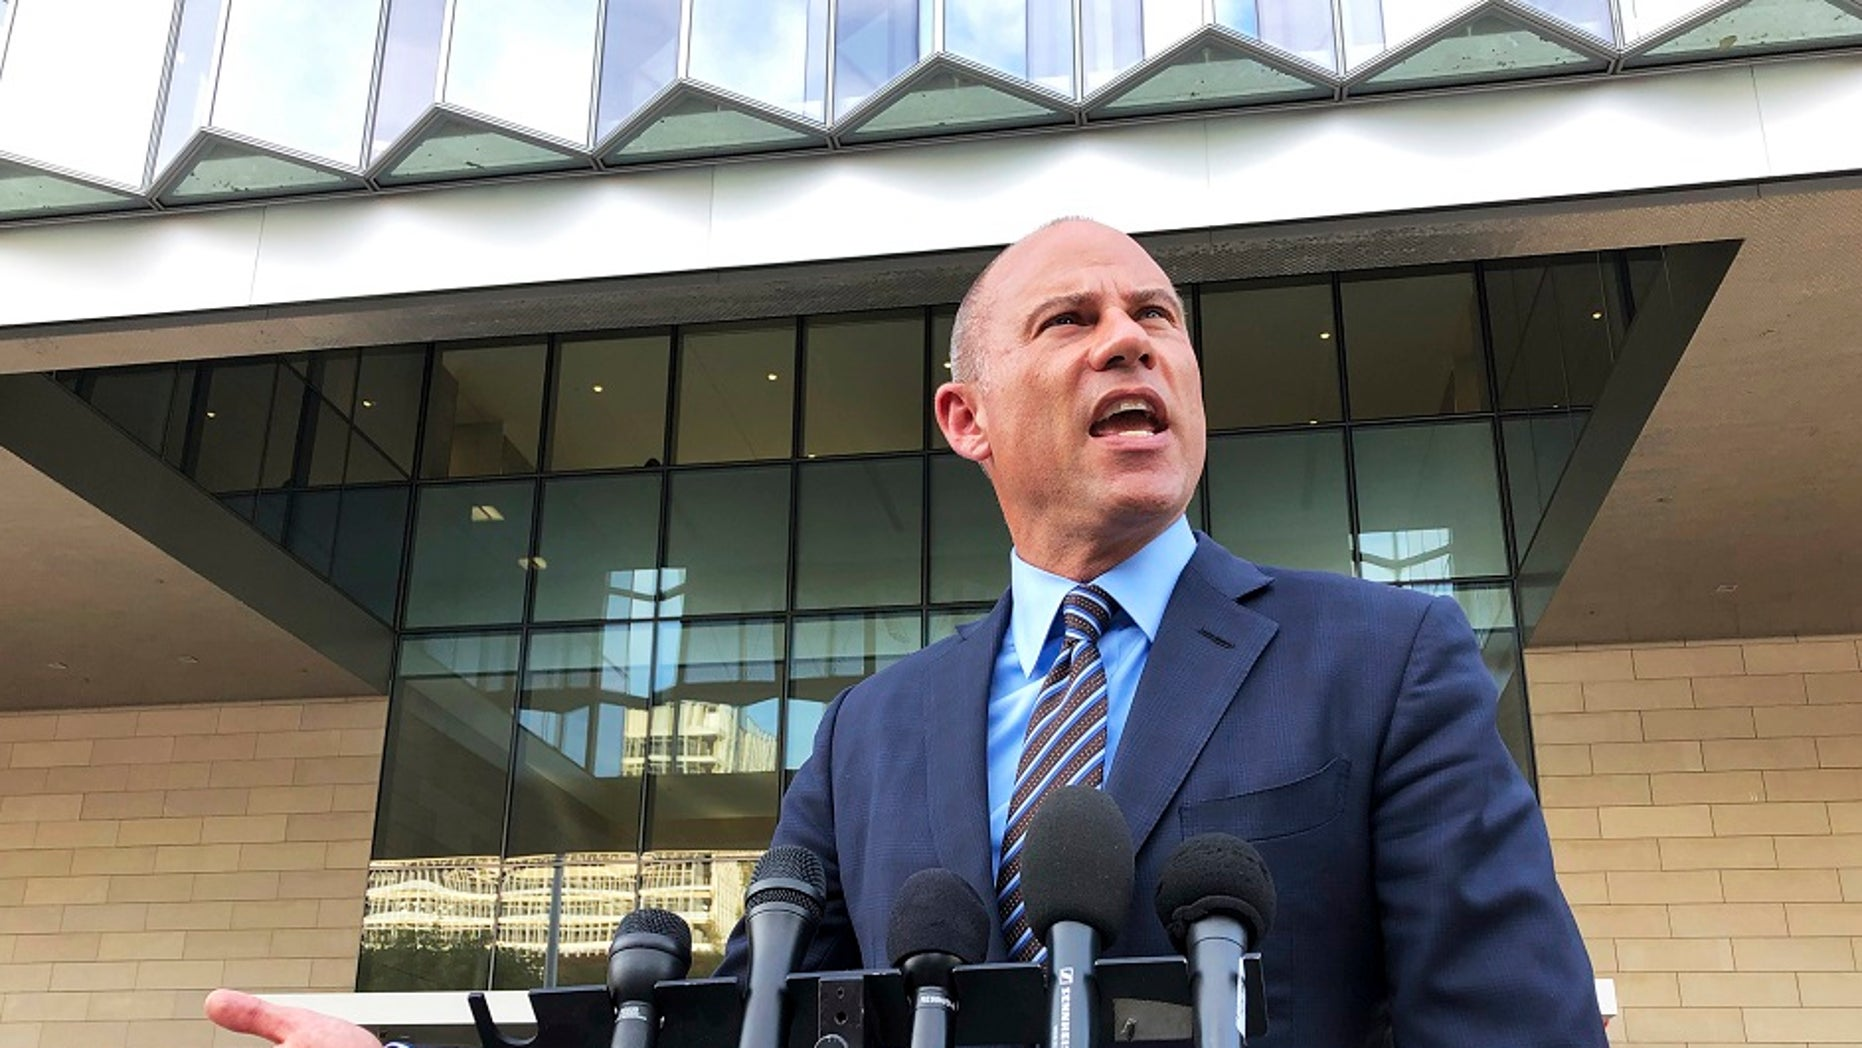 Michael Avenatti, attorney for porn actress Stormy Daniels, talks to reporters outside federal court in Los Angeles, Jan. 22, 2019. (Associated Press)